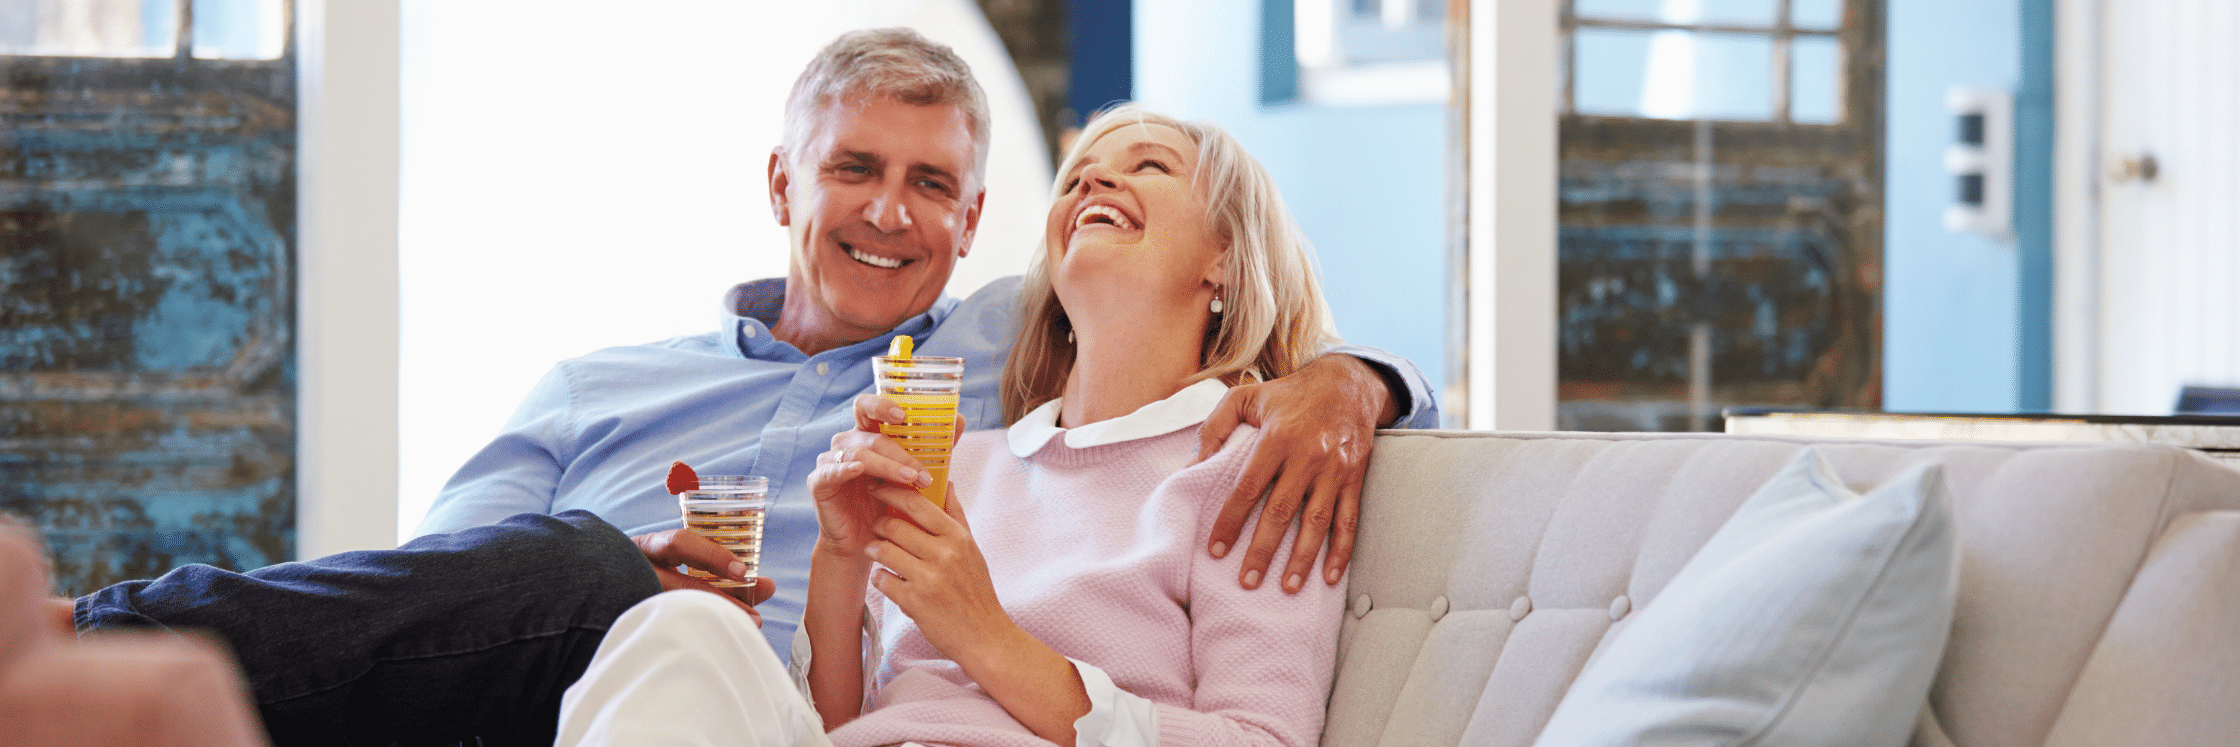 Elderly Couple Enjoying drinks on the couch